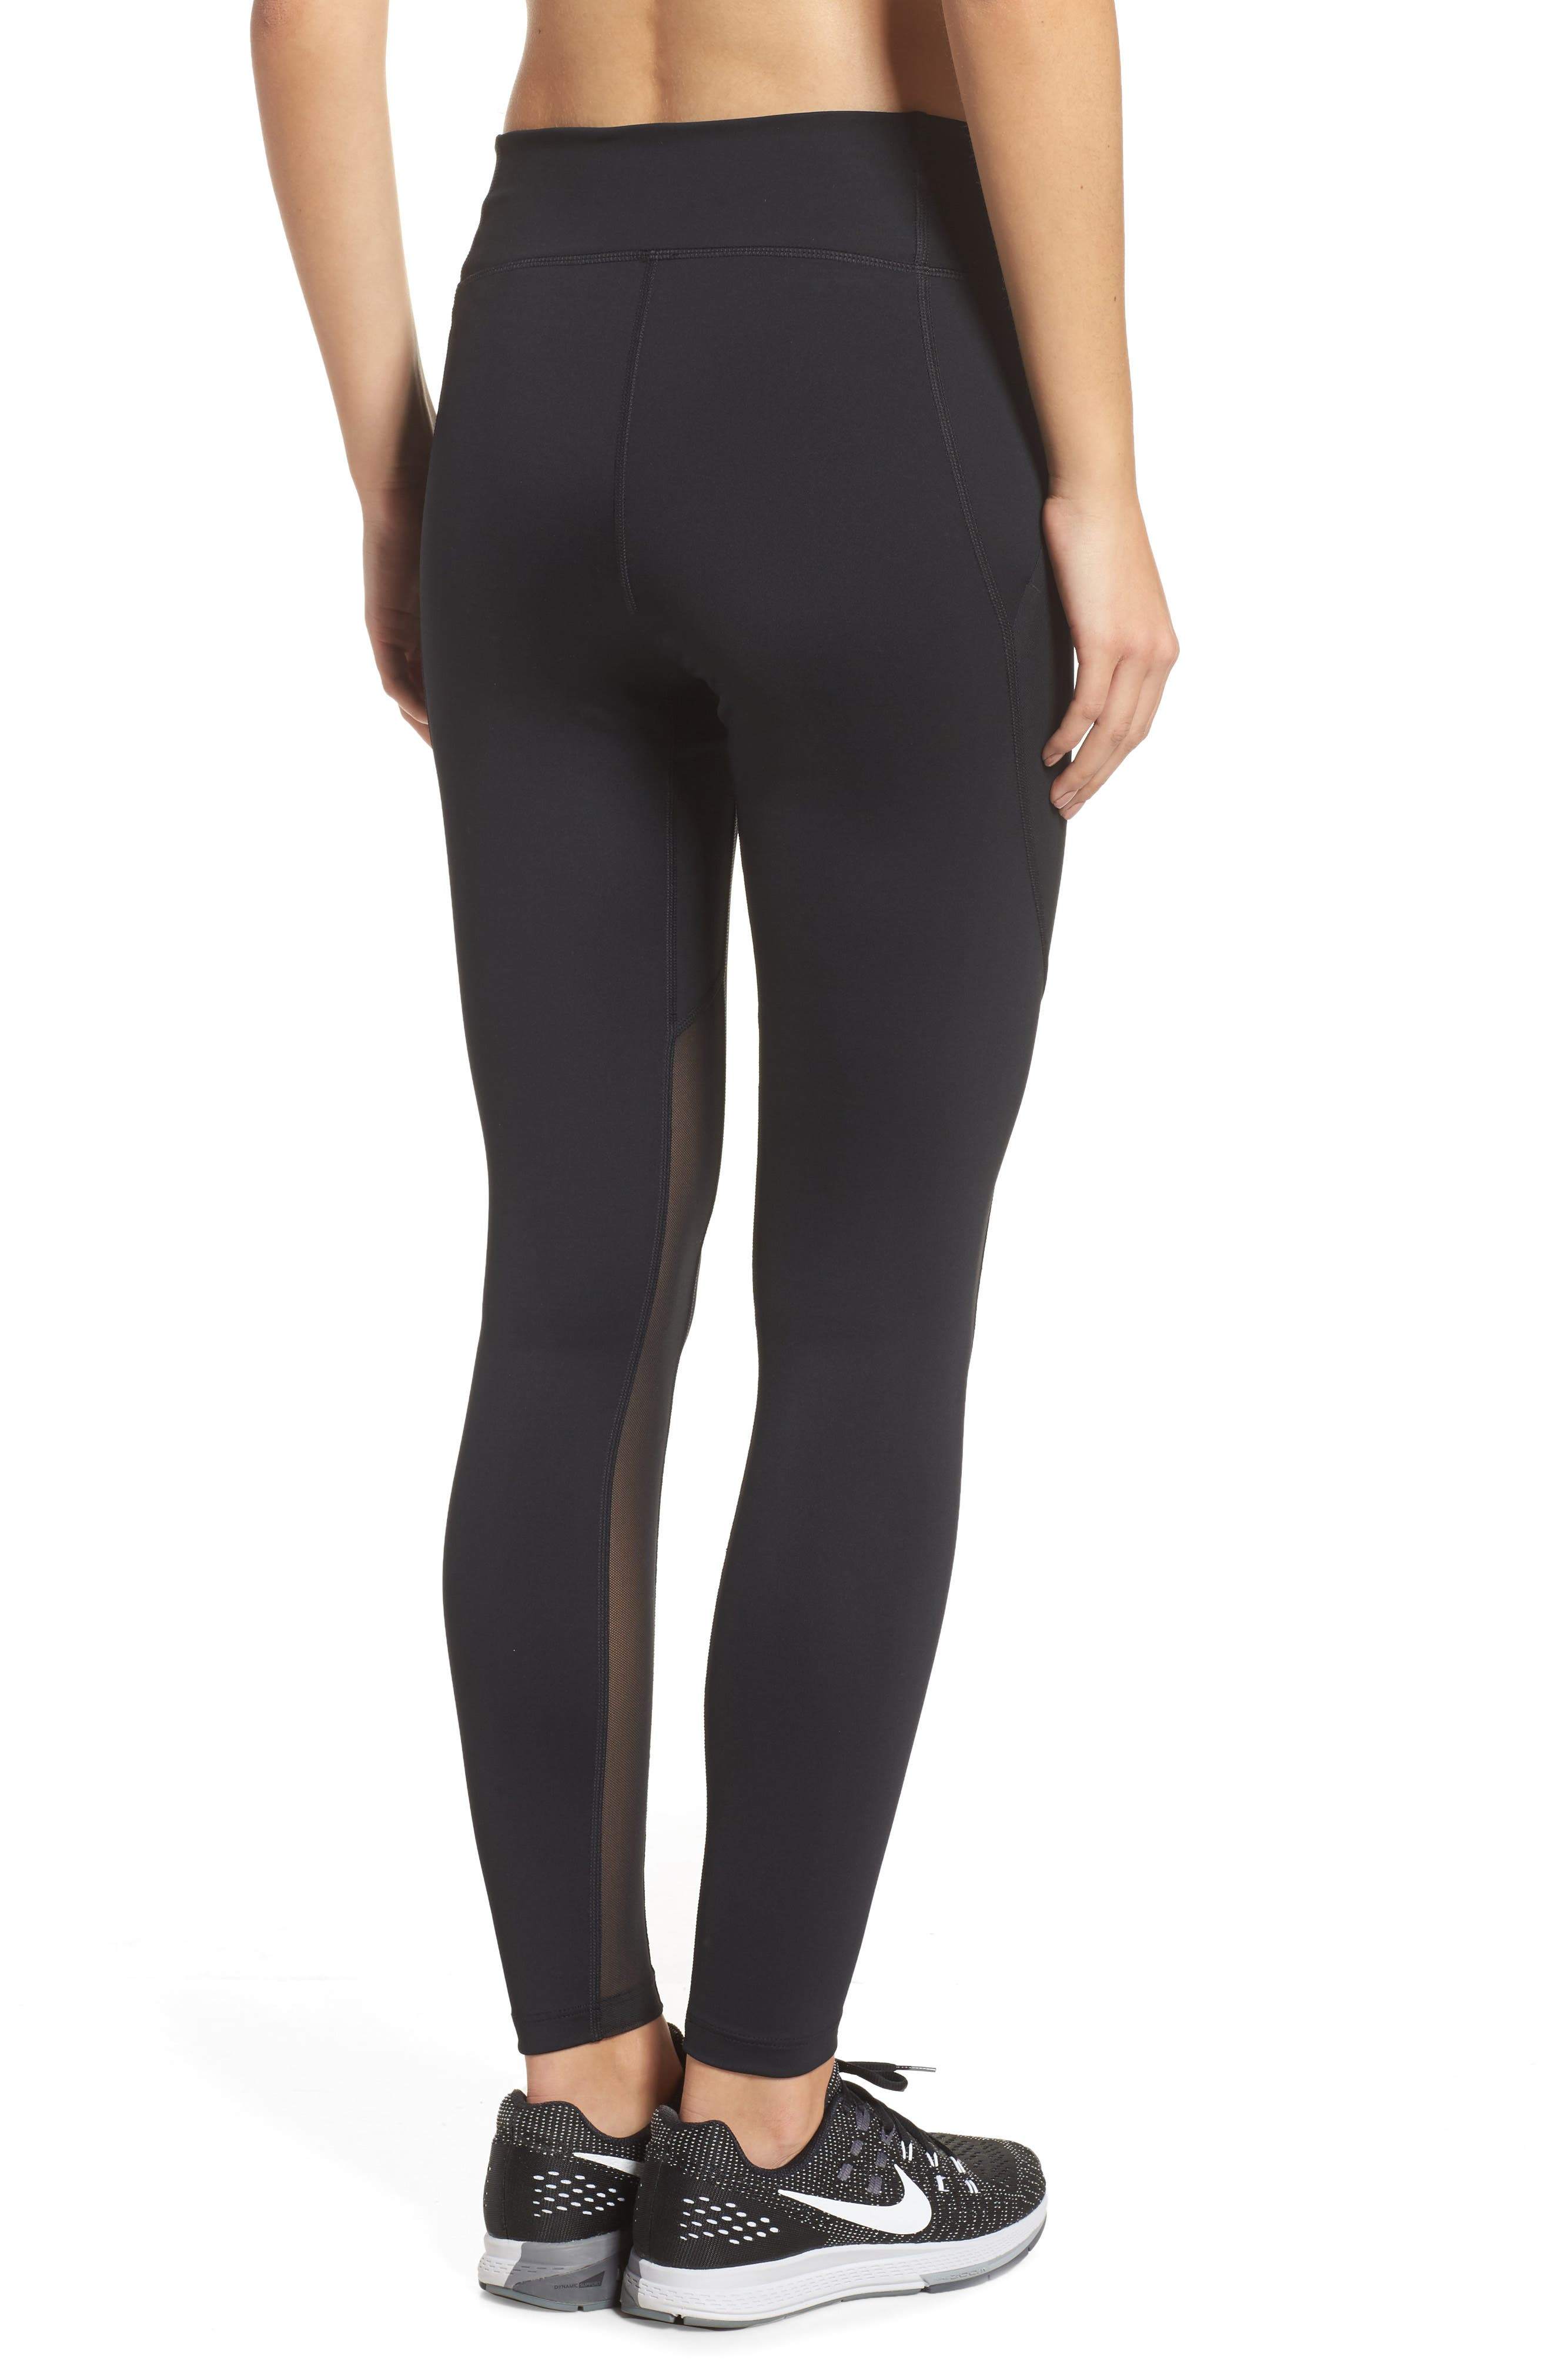 Power Pocket Lux Ankle Tights,                             Alternate thumbnail 2, color,                             BLACK/ BLACK/ CLEAR